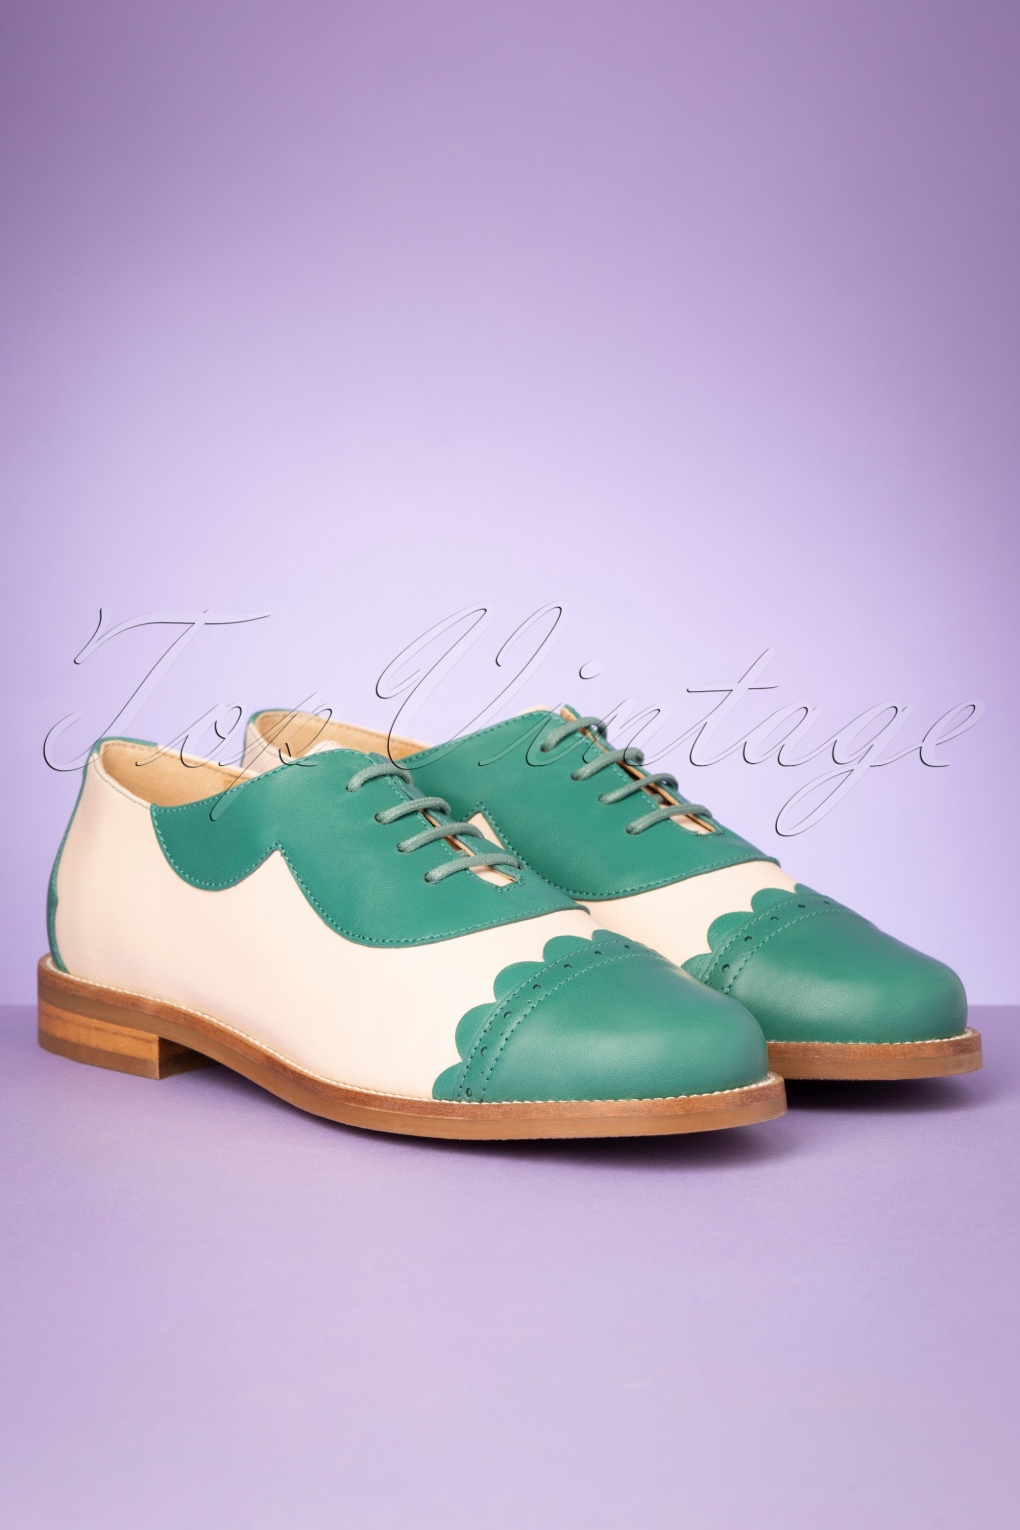 1960s Style Dresses, Clothing, Shoes UK 60s Mika Oxford Shoes in Turquoise and Cream £84.02 AT vintagedancer.com